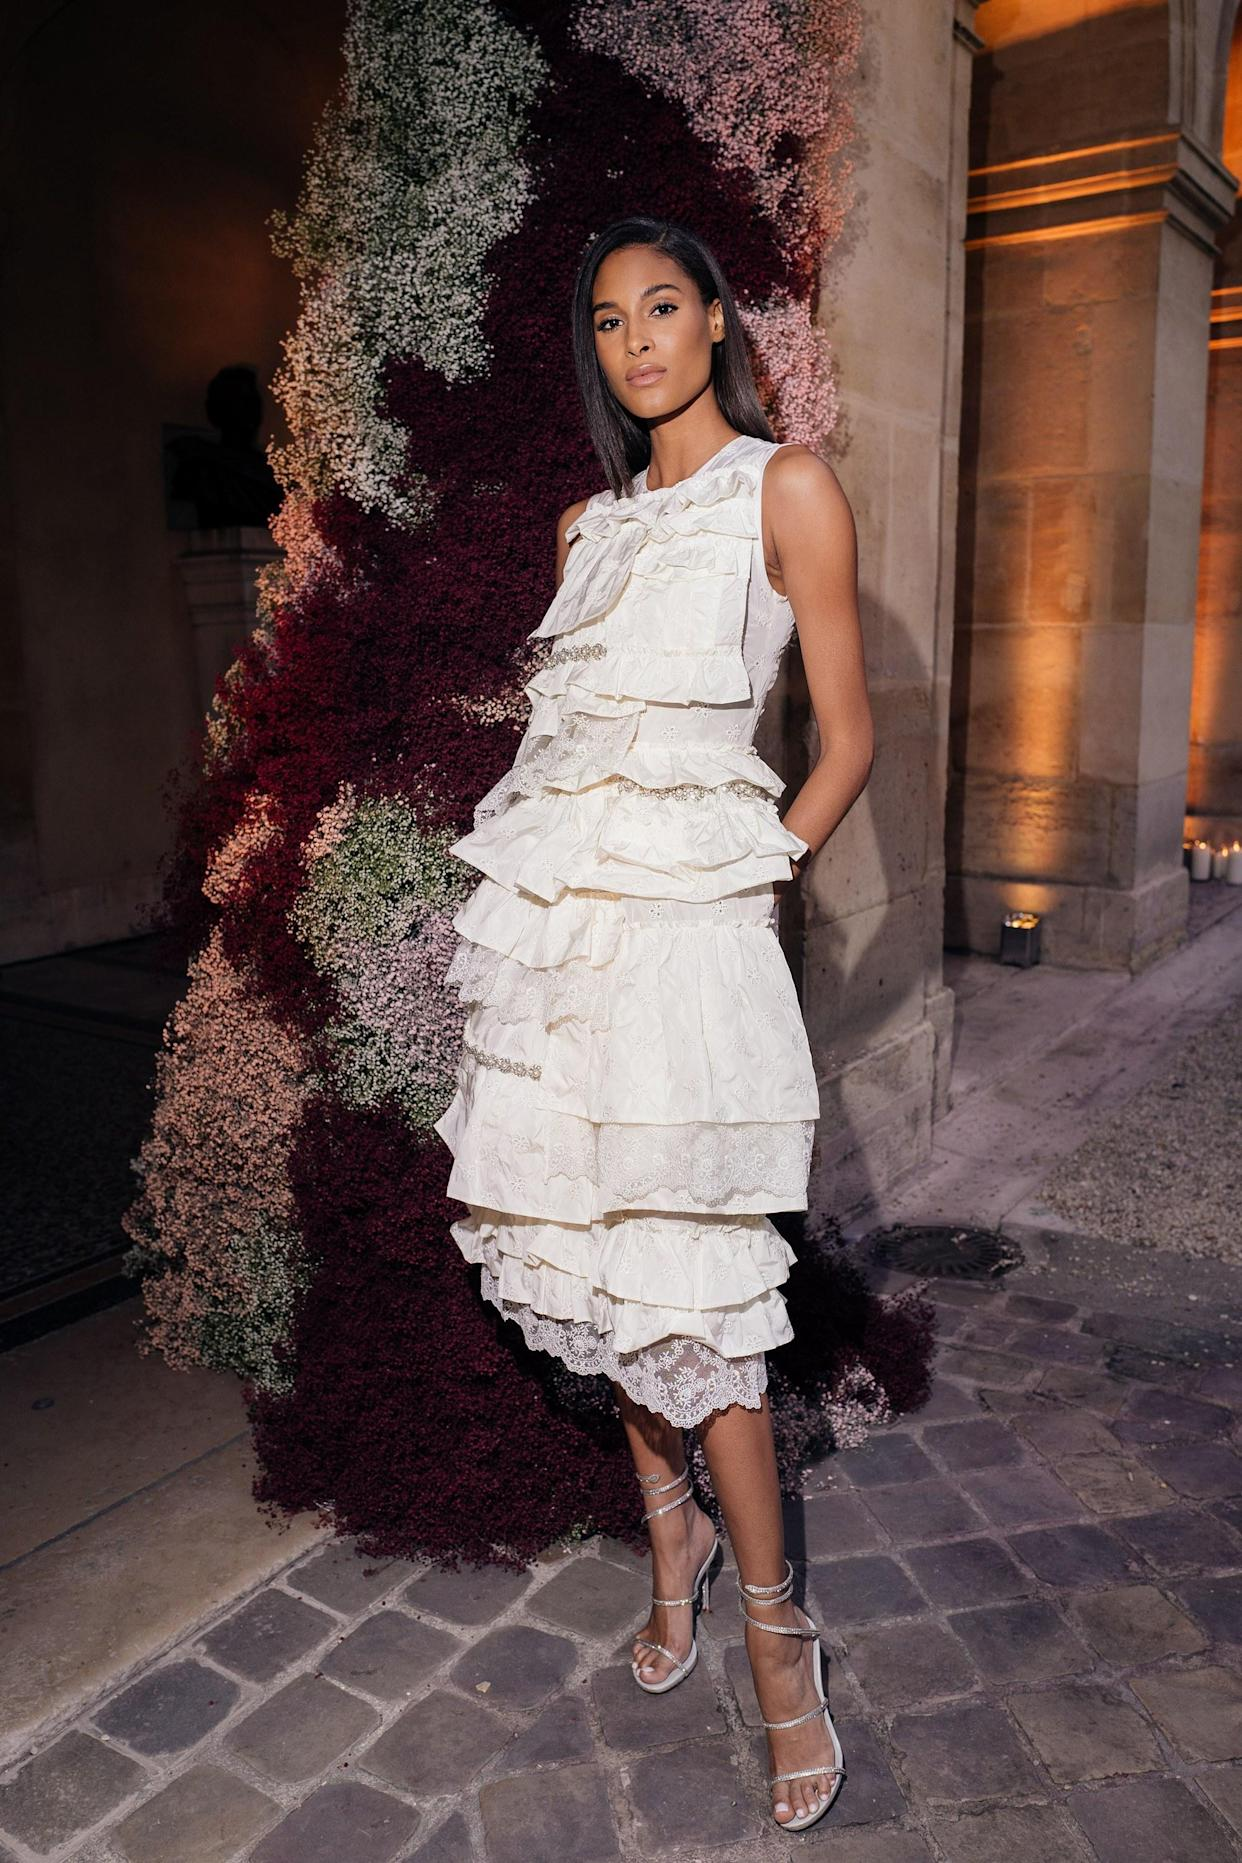 Bruna Laila moncler and mytheresa host a sunset dinner in paris to